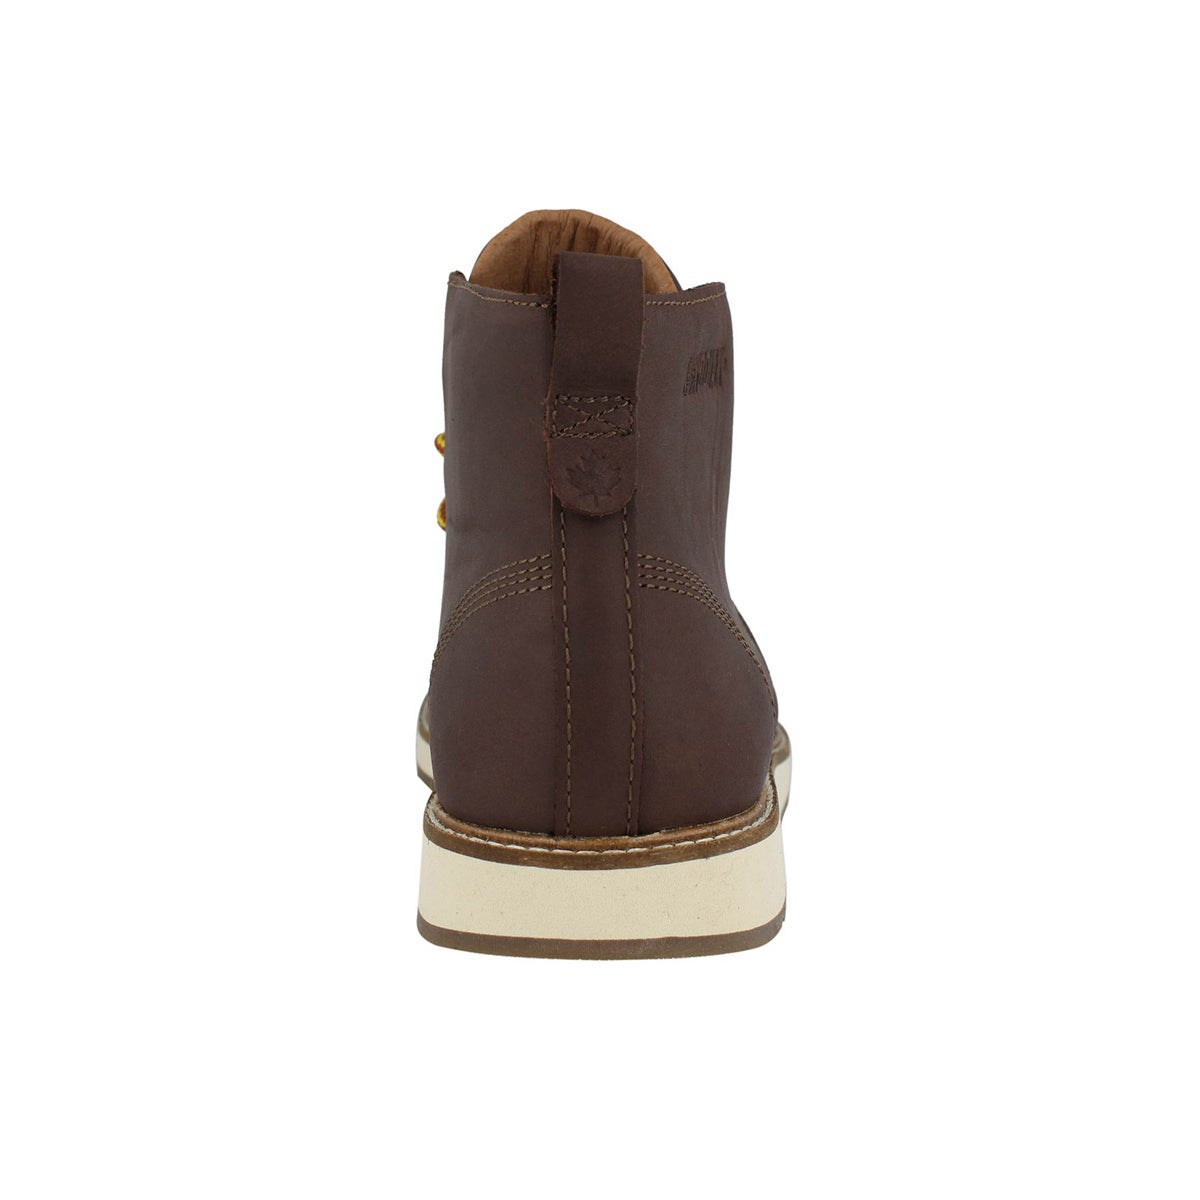 Mns Chase brown wtpf 3-eye ankle boot